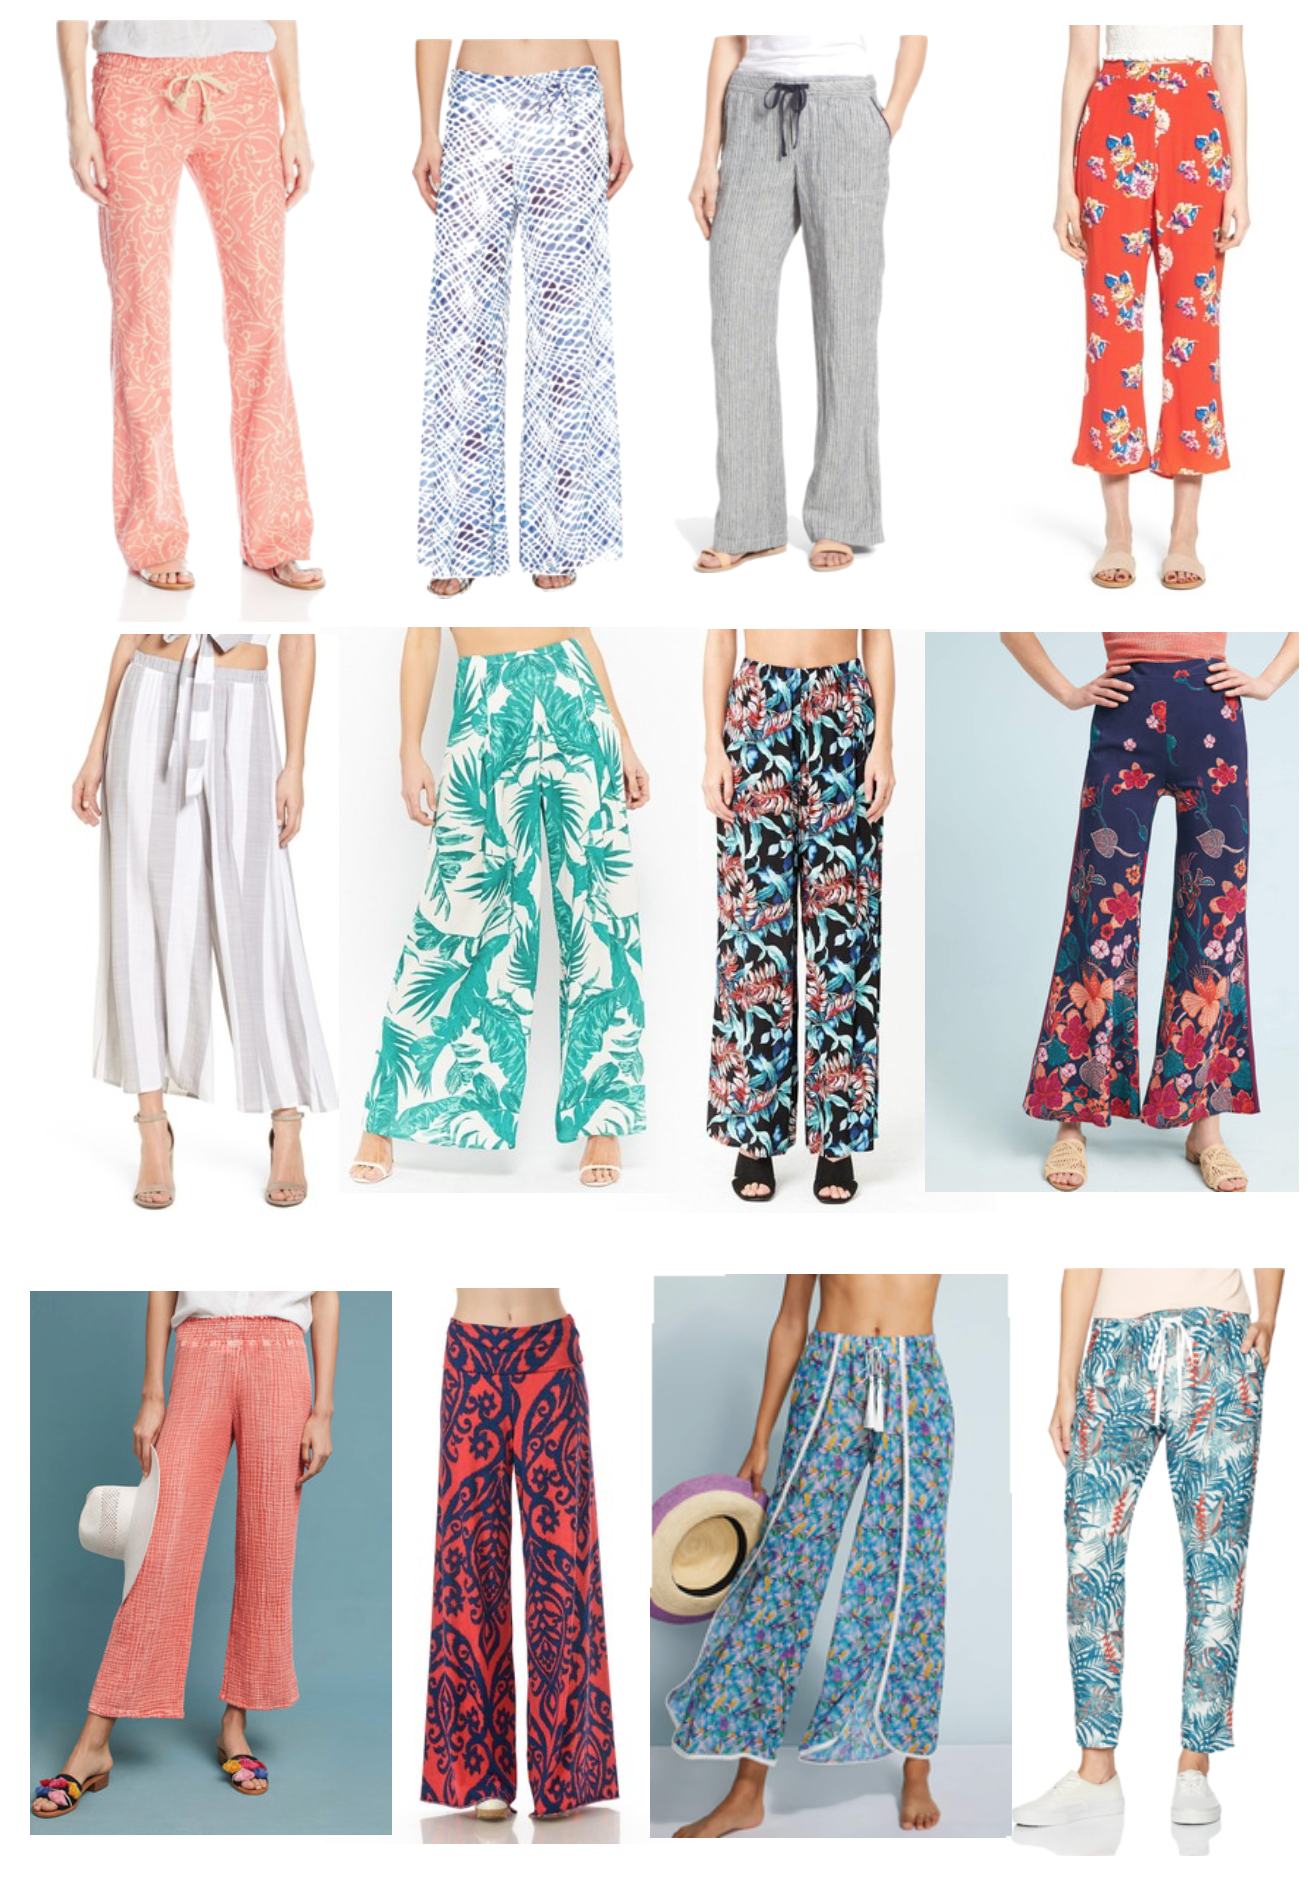 Loving Lately: Printed Pants Edition  - Printed Pants For Summer - Fashion - Beach Style - Communikait by Kait Hanson